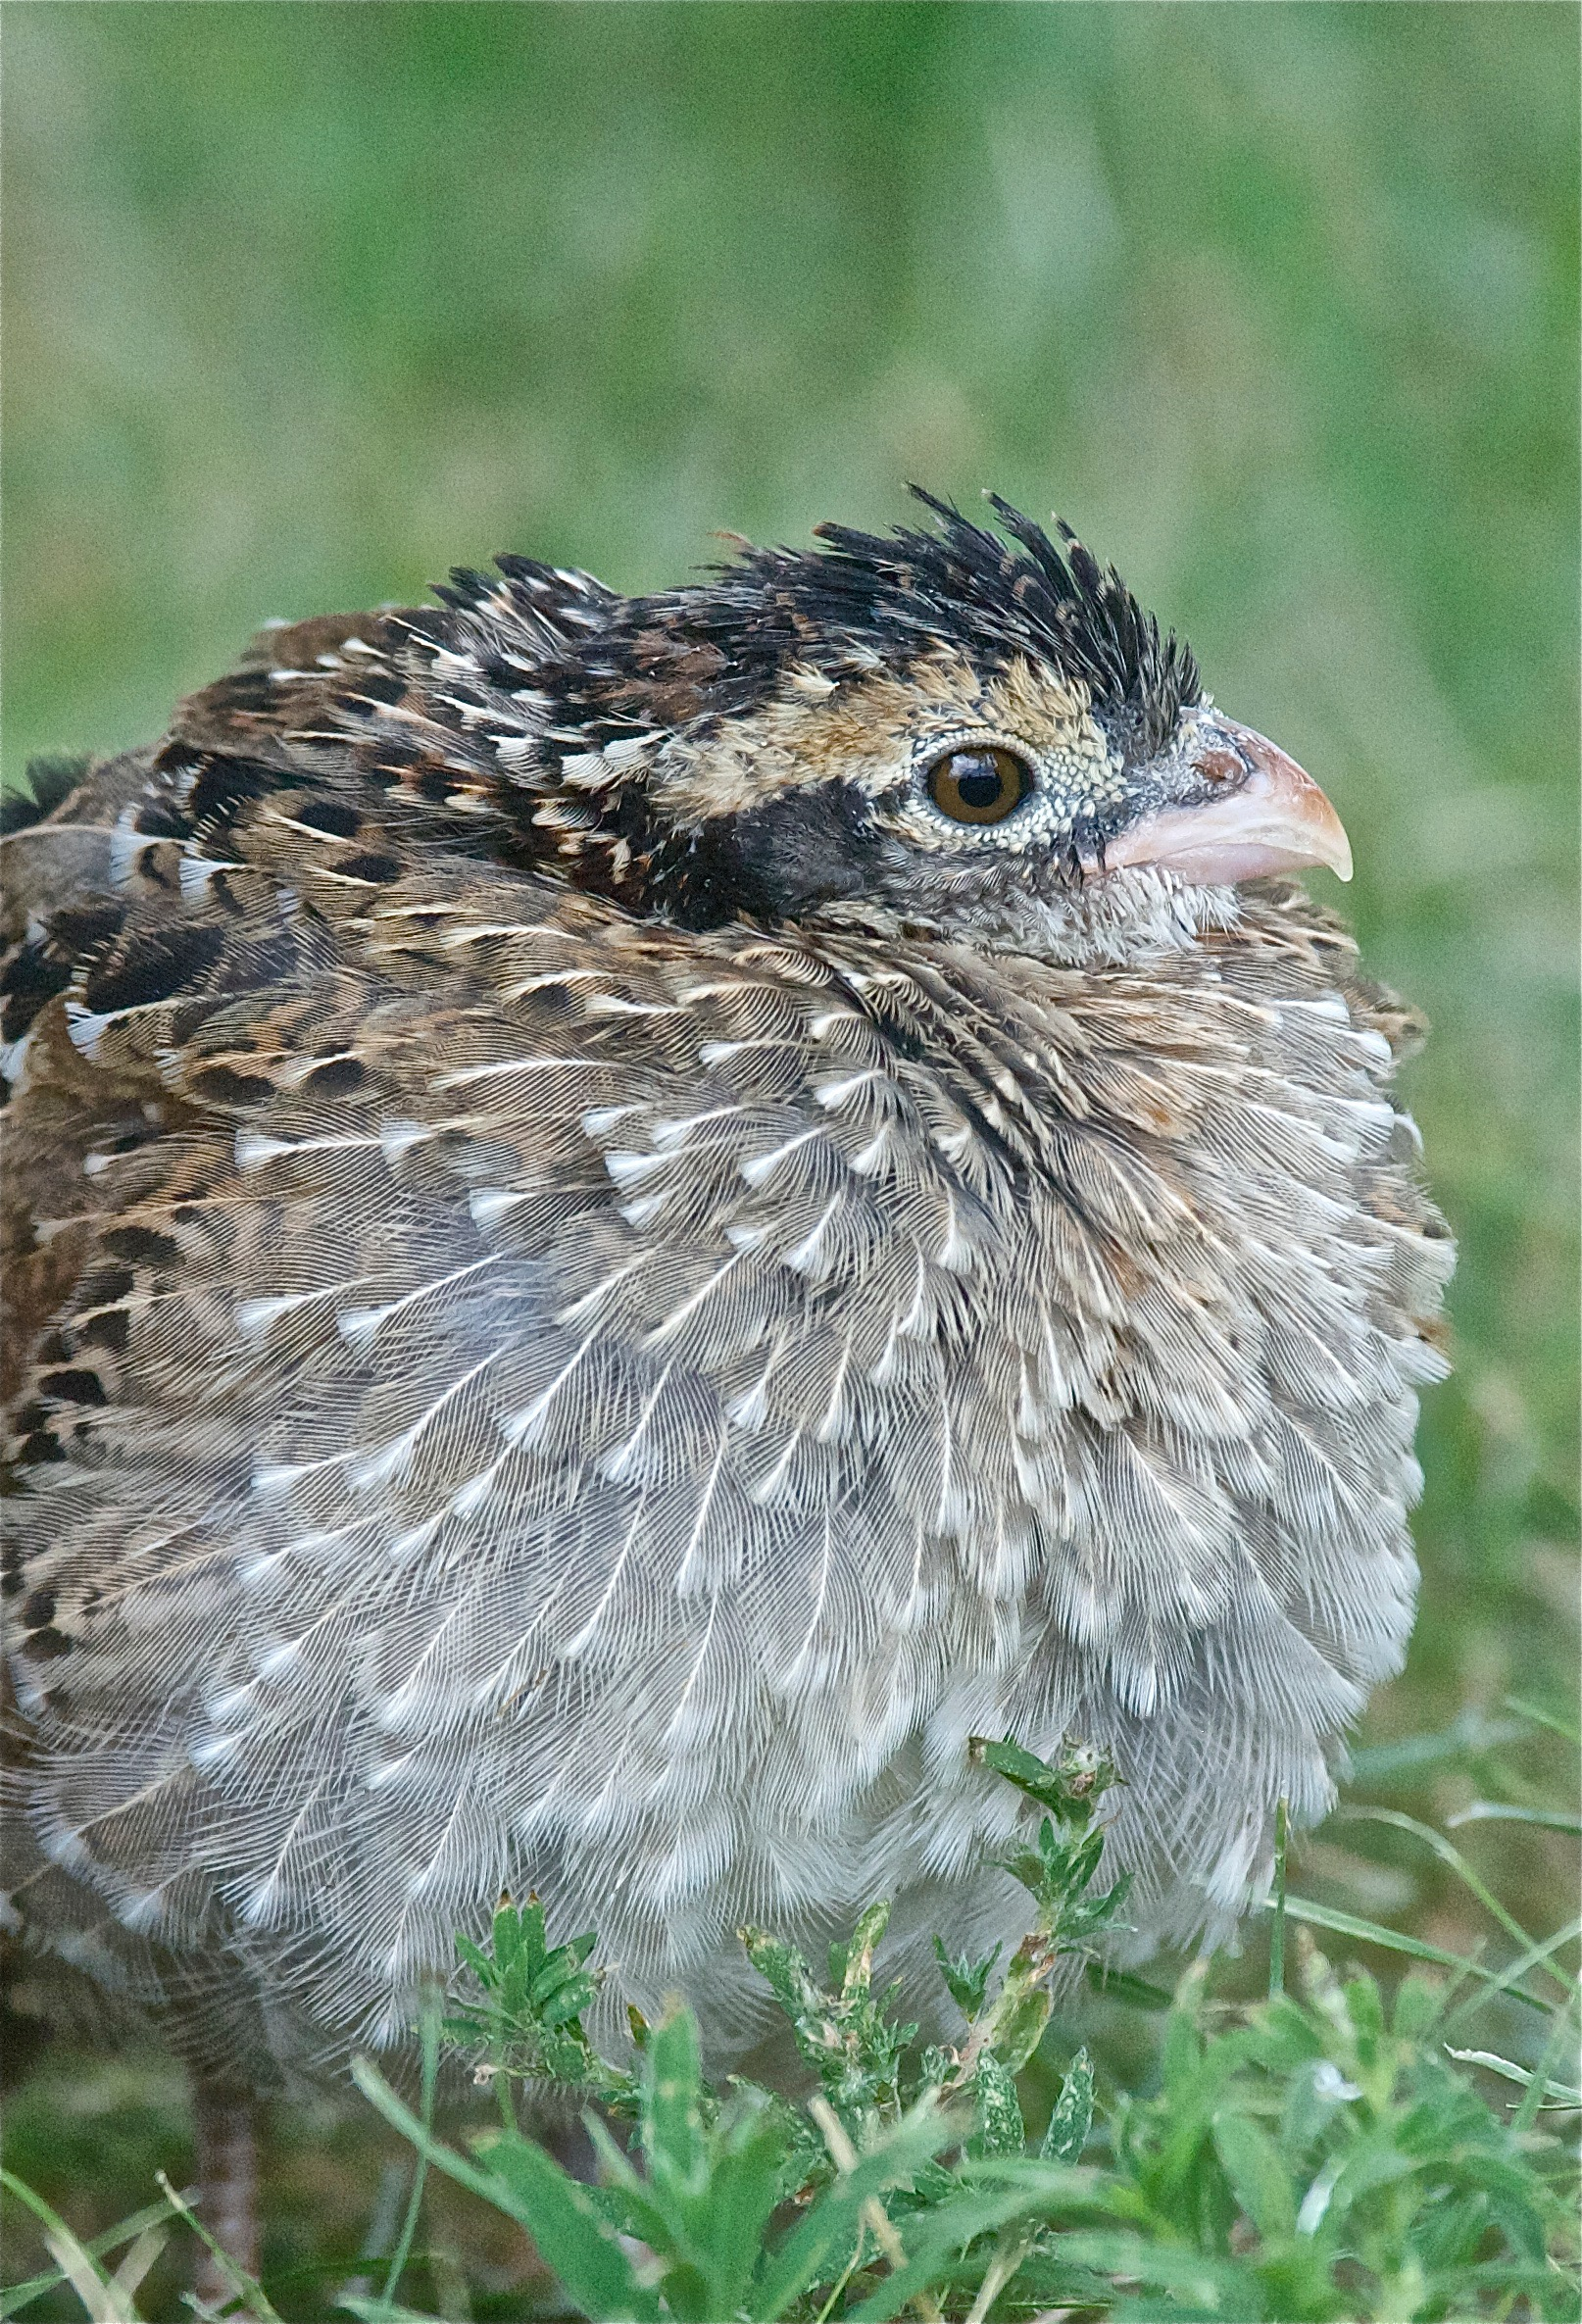 Four-Week old Bobwhite Quail